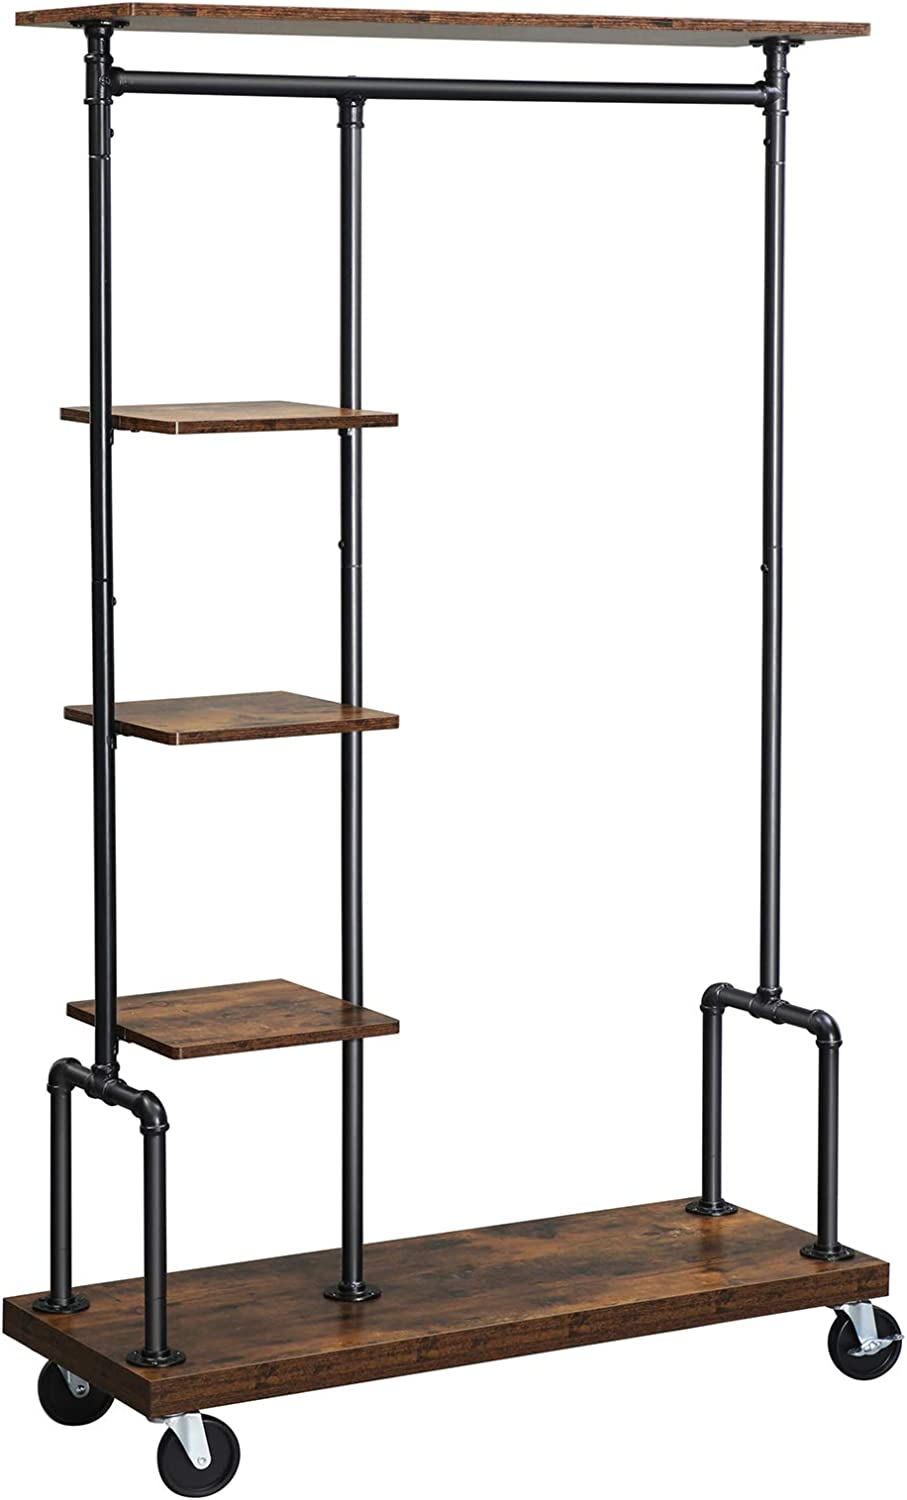 vasagle clothes rack clothing garment rack on wheels rolling clothes organizer with 5 tier industrial pipe style rustic brown uhsr66bx